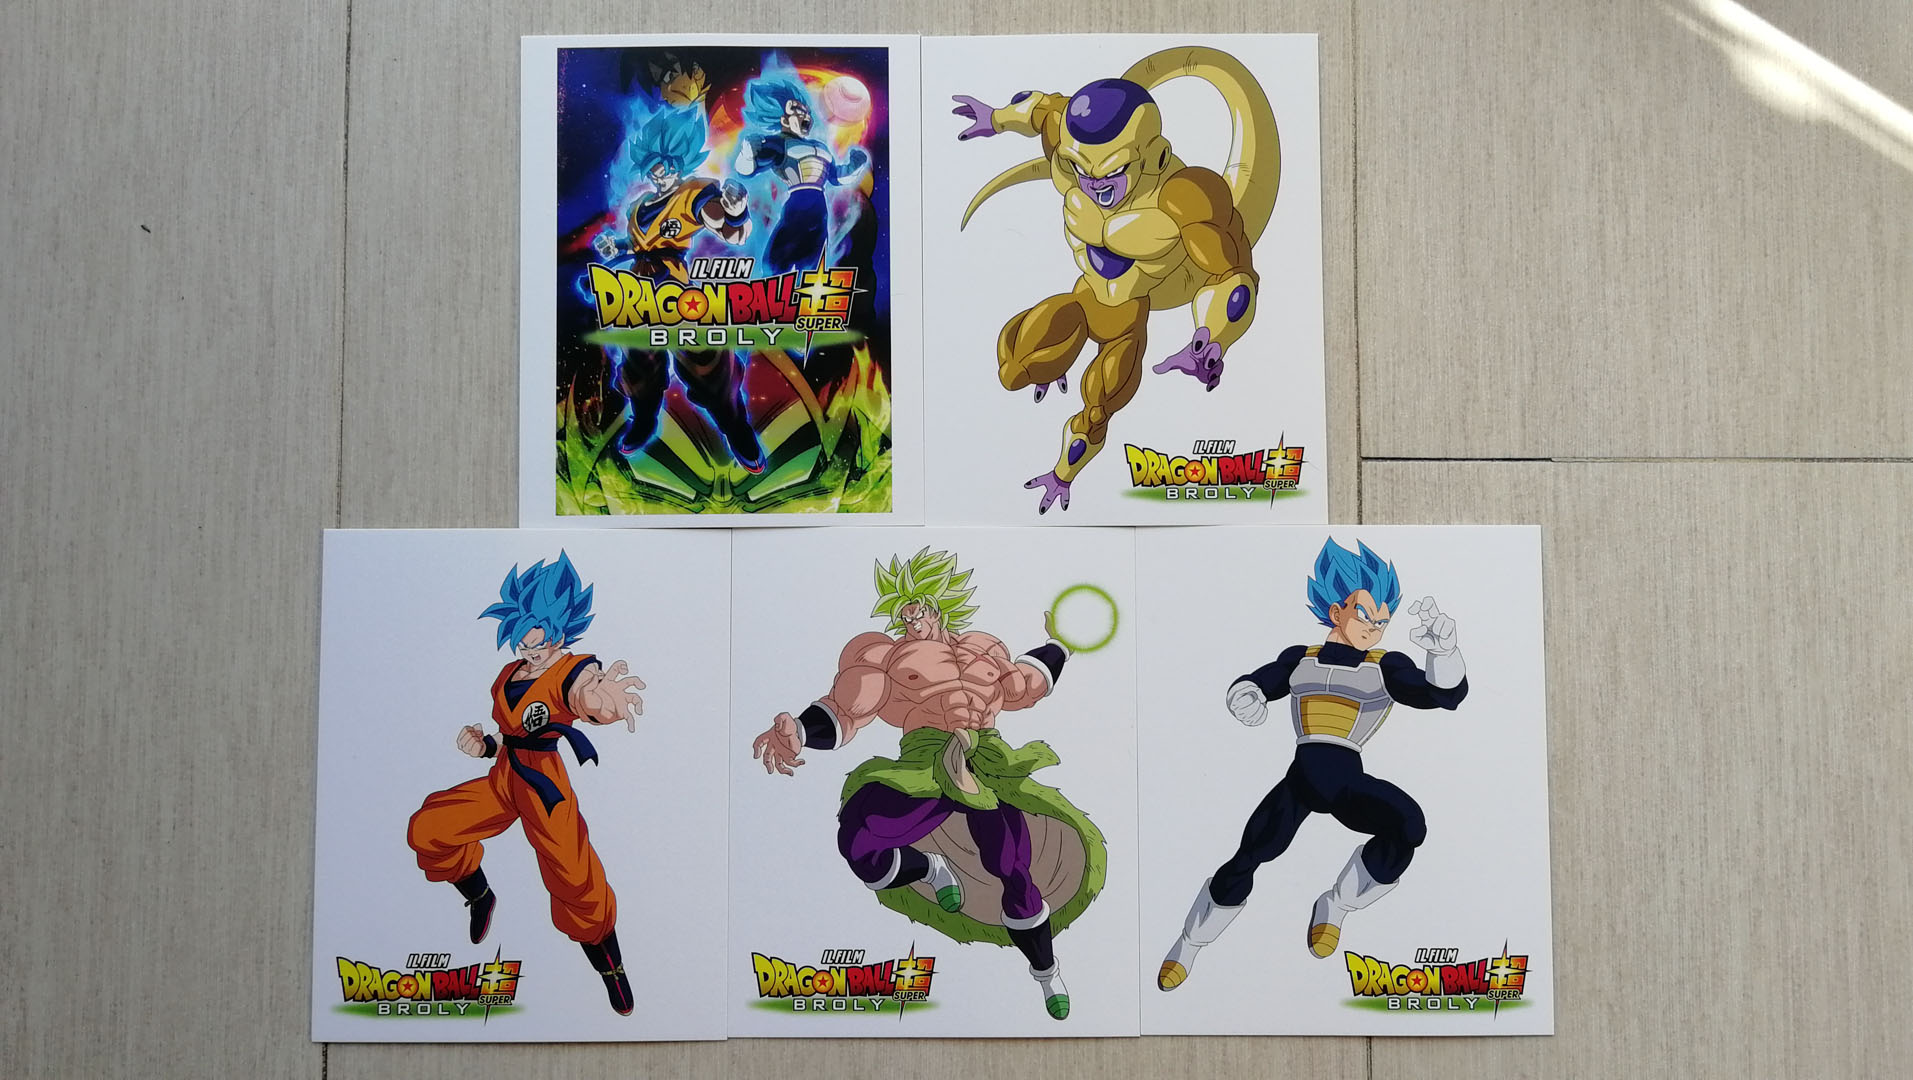 Dragon Ball Super: Broly figurine